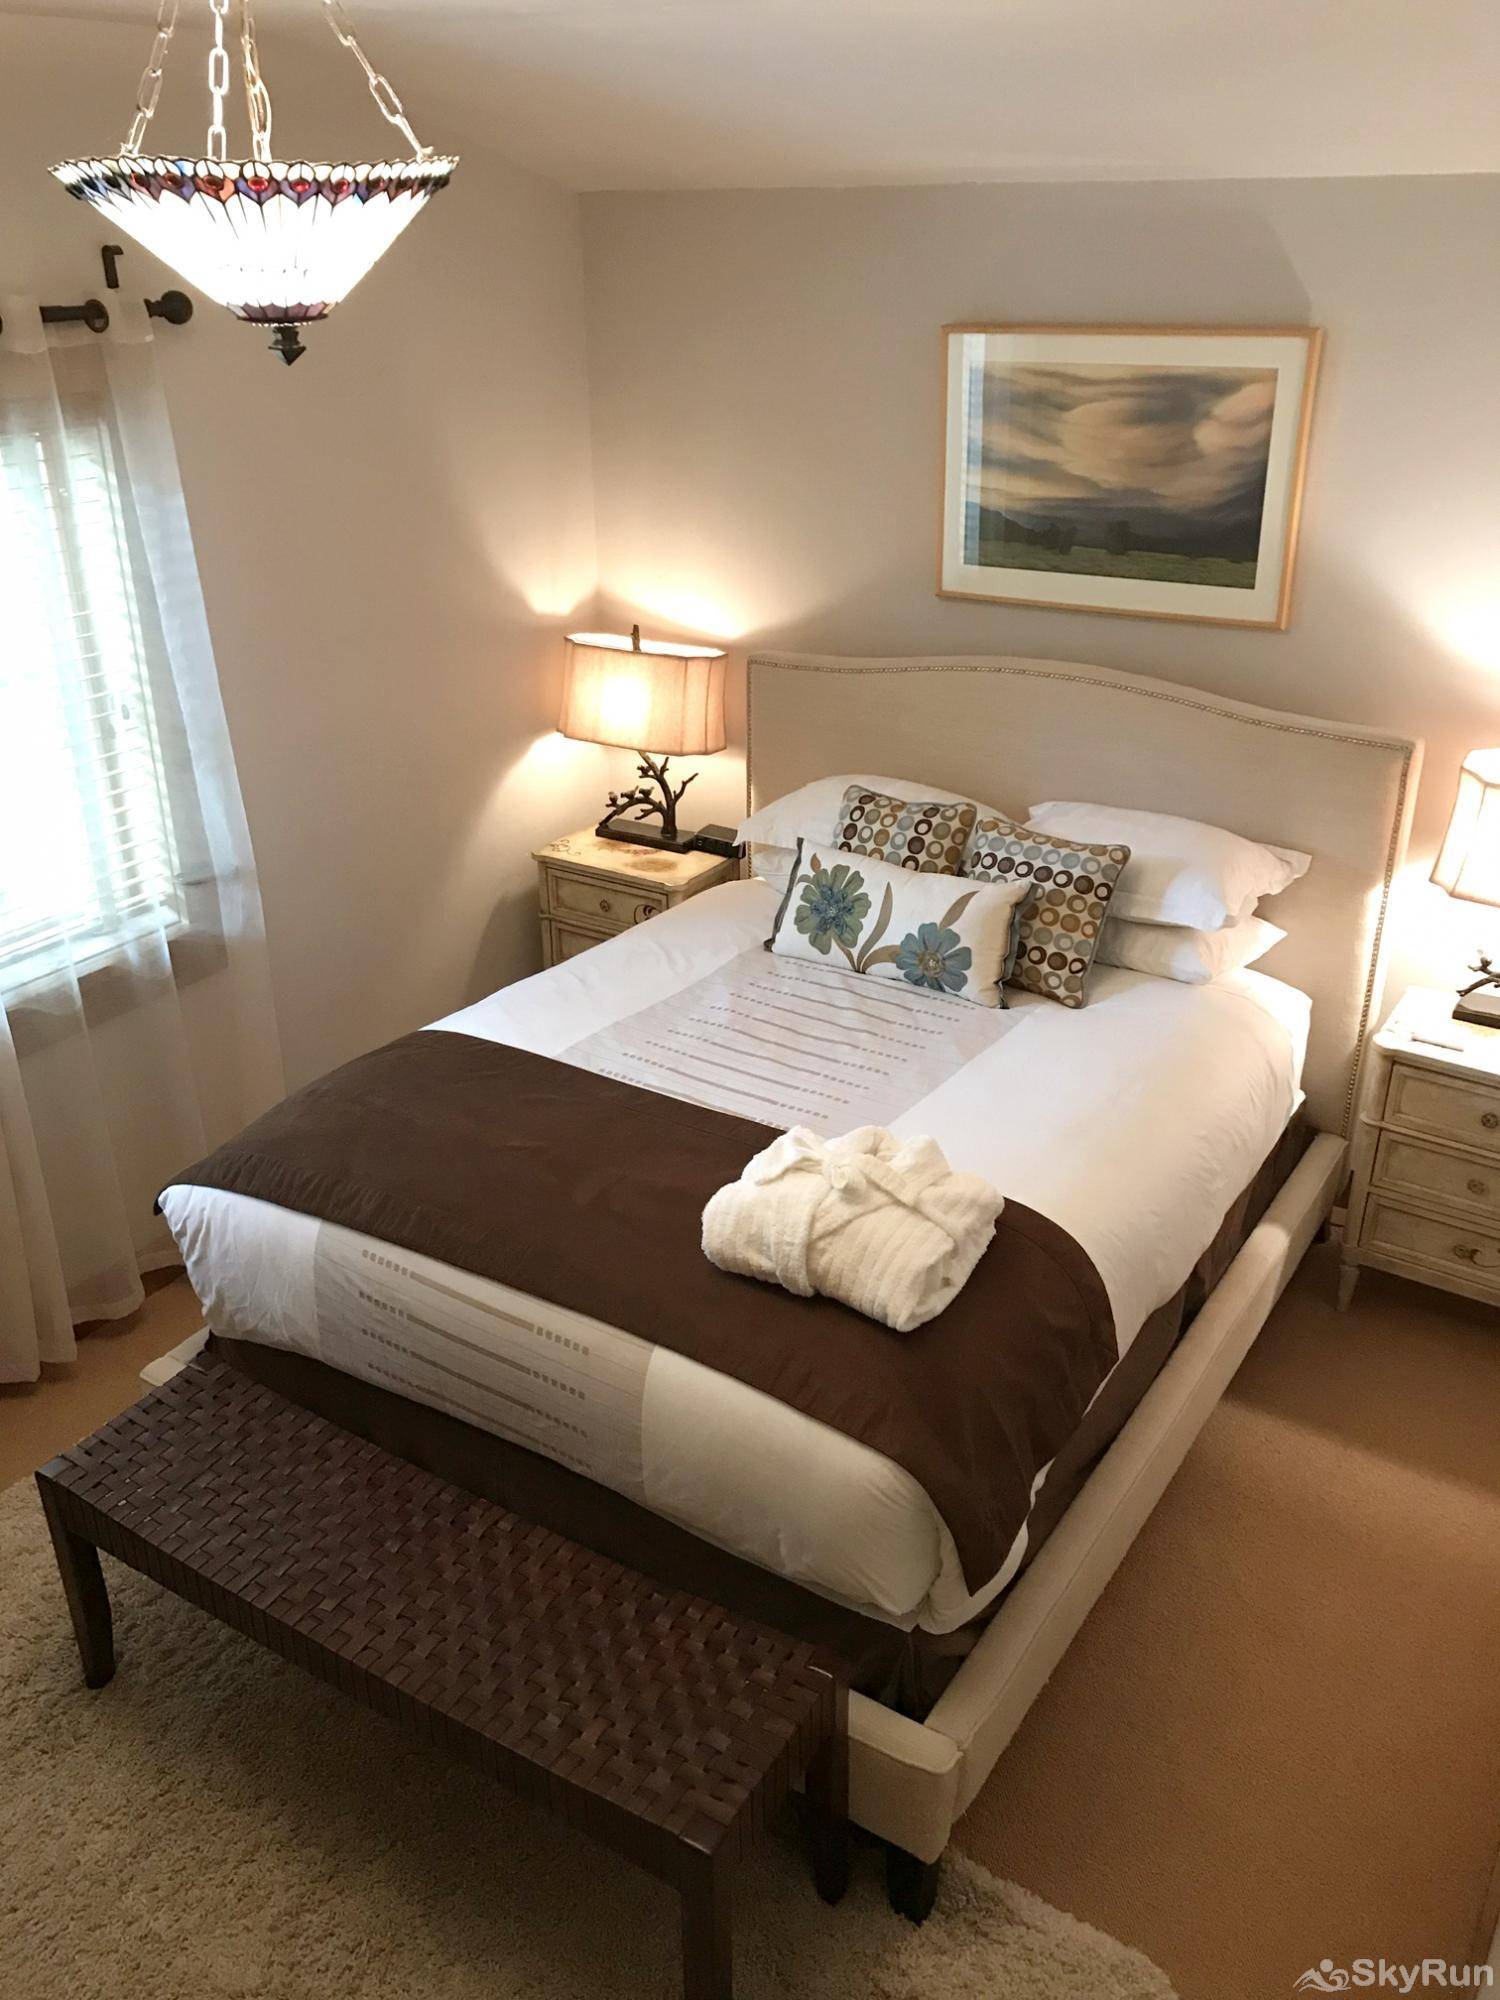 Whitefish River Inn The Robin bedroom has an upholstered queen bed, dresser, bedside tables, and a closet.